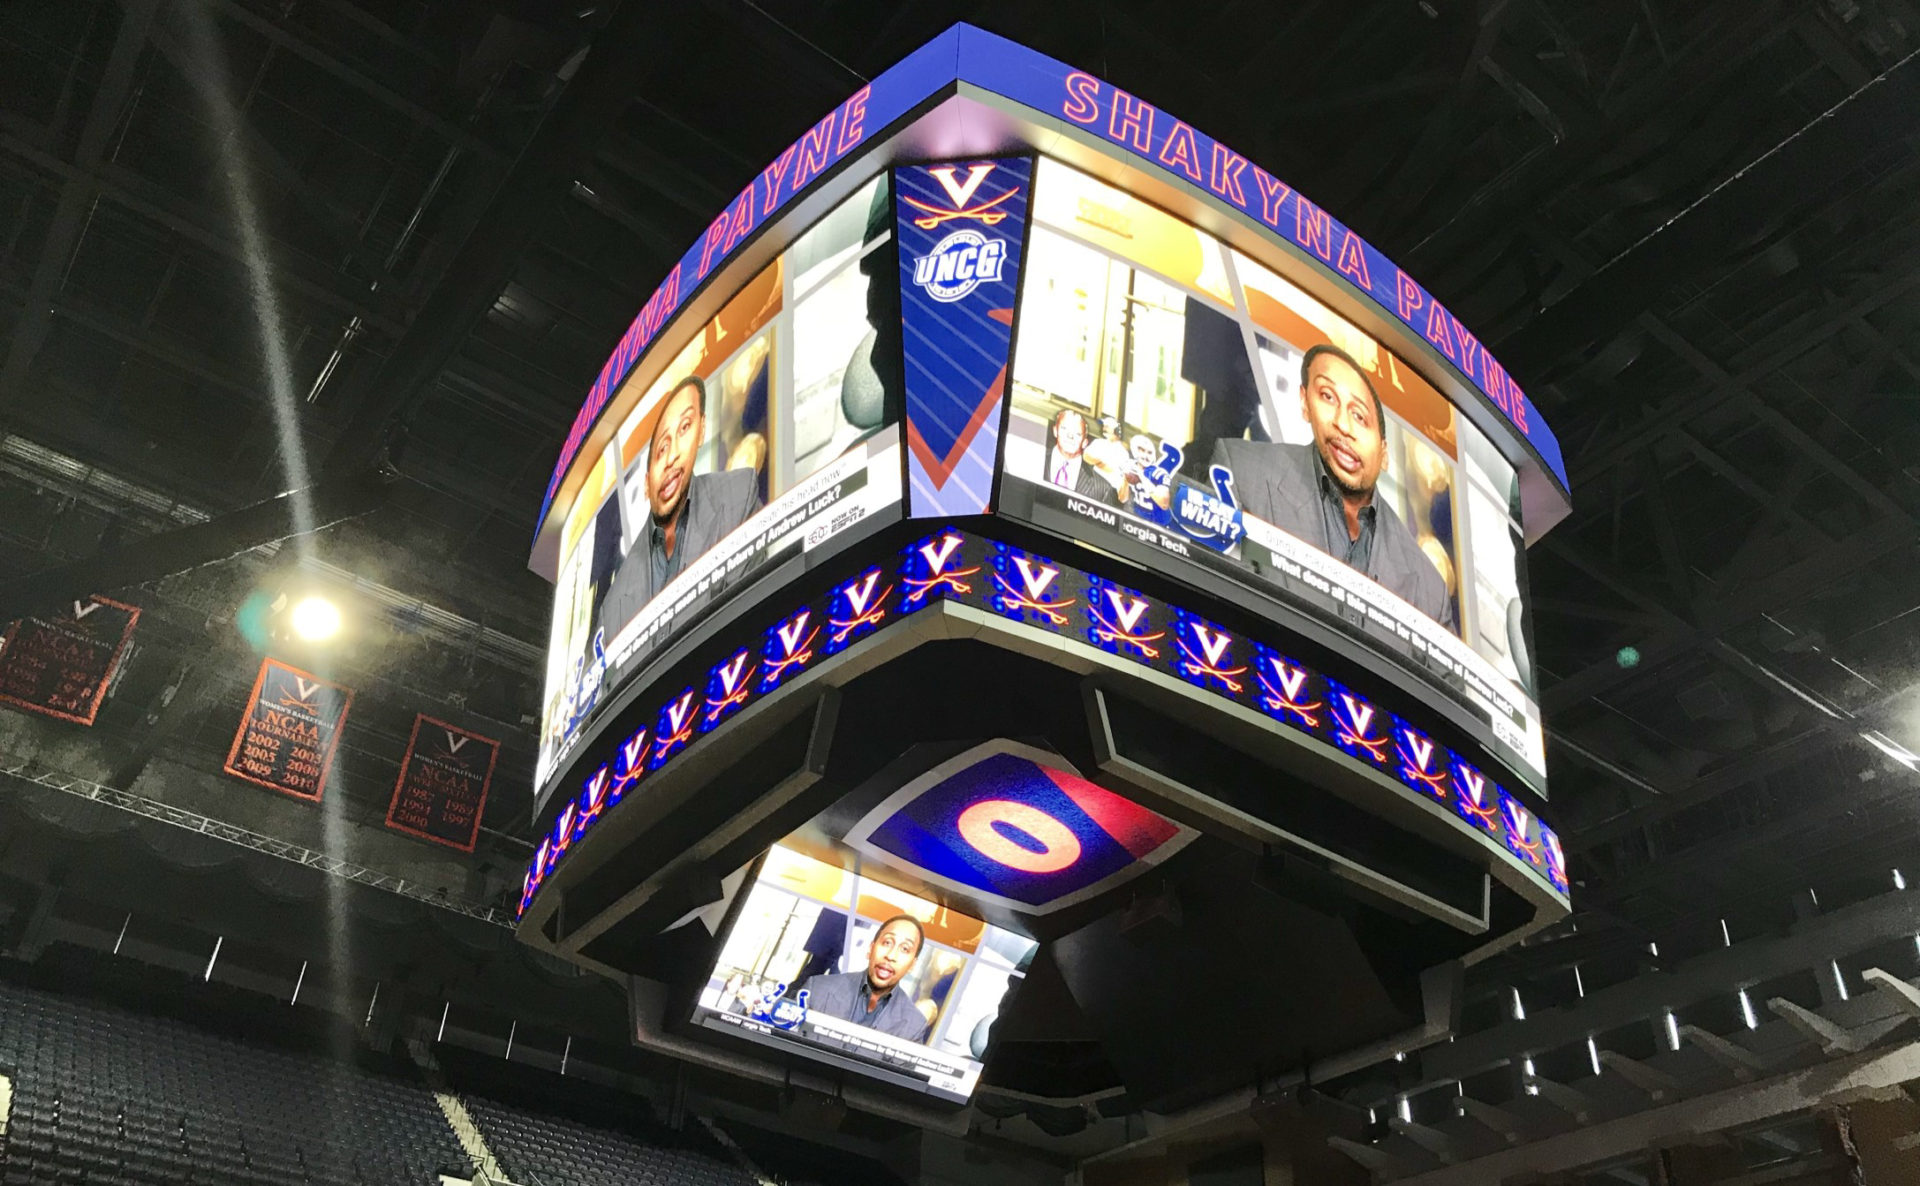 AJP, Anthony James Partners, AV Consulting, Control Room, Video Replay, Broadcast Cabling, IPTV, CATV, Distributed TV, Basketball, Center Hung, UVA, University of Virginia, College Sports, Division 1, High Definition, LED Scoreboard, LED Video, LED Videoboard, NCAA